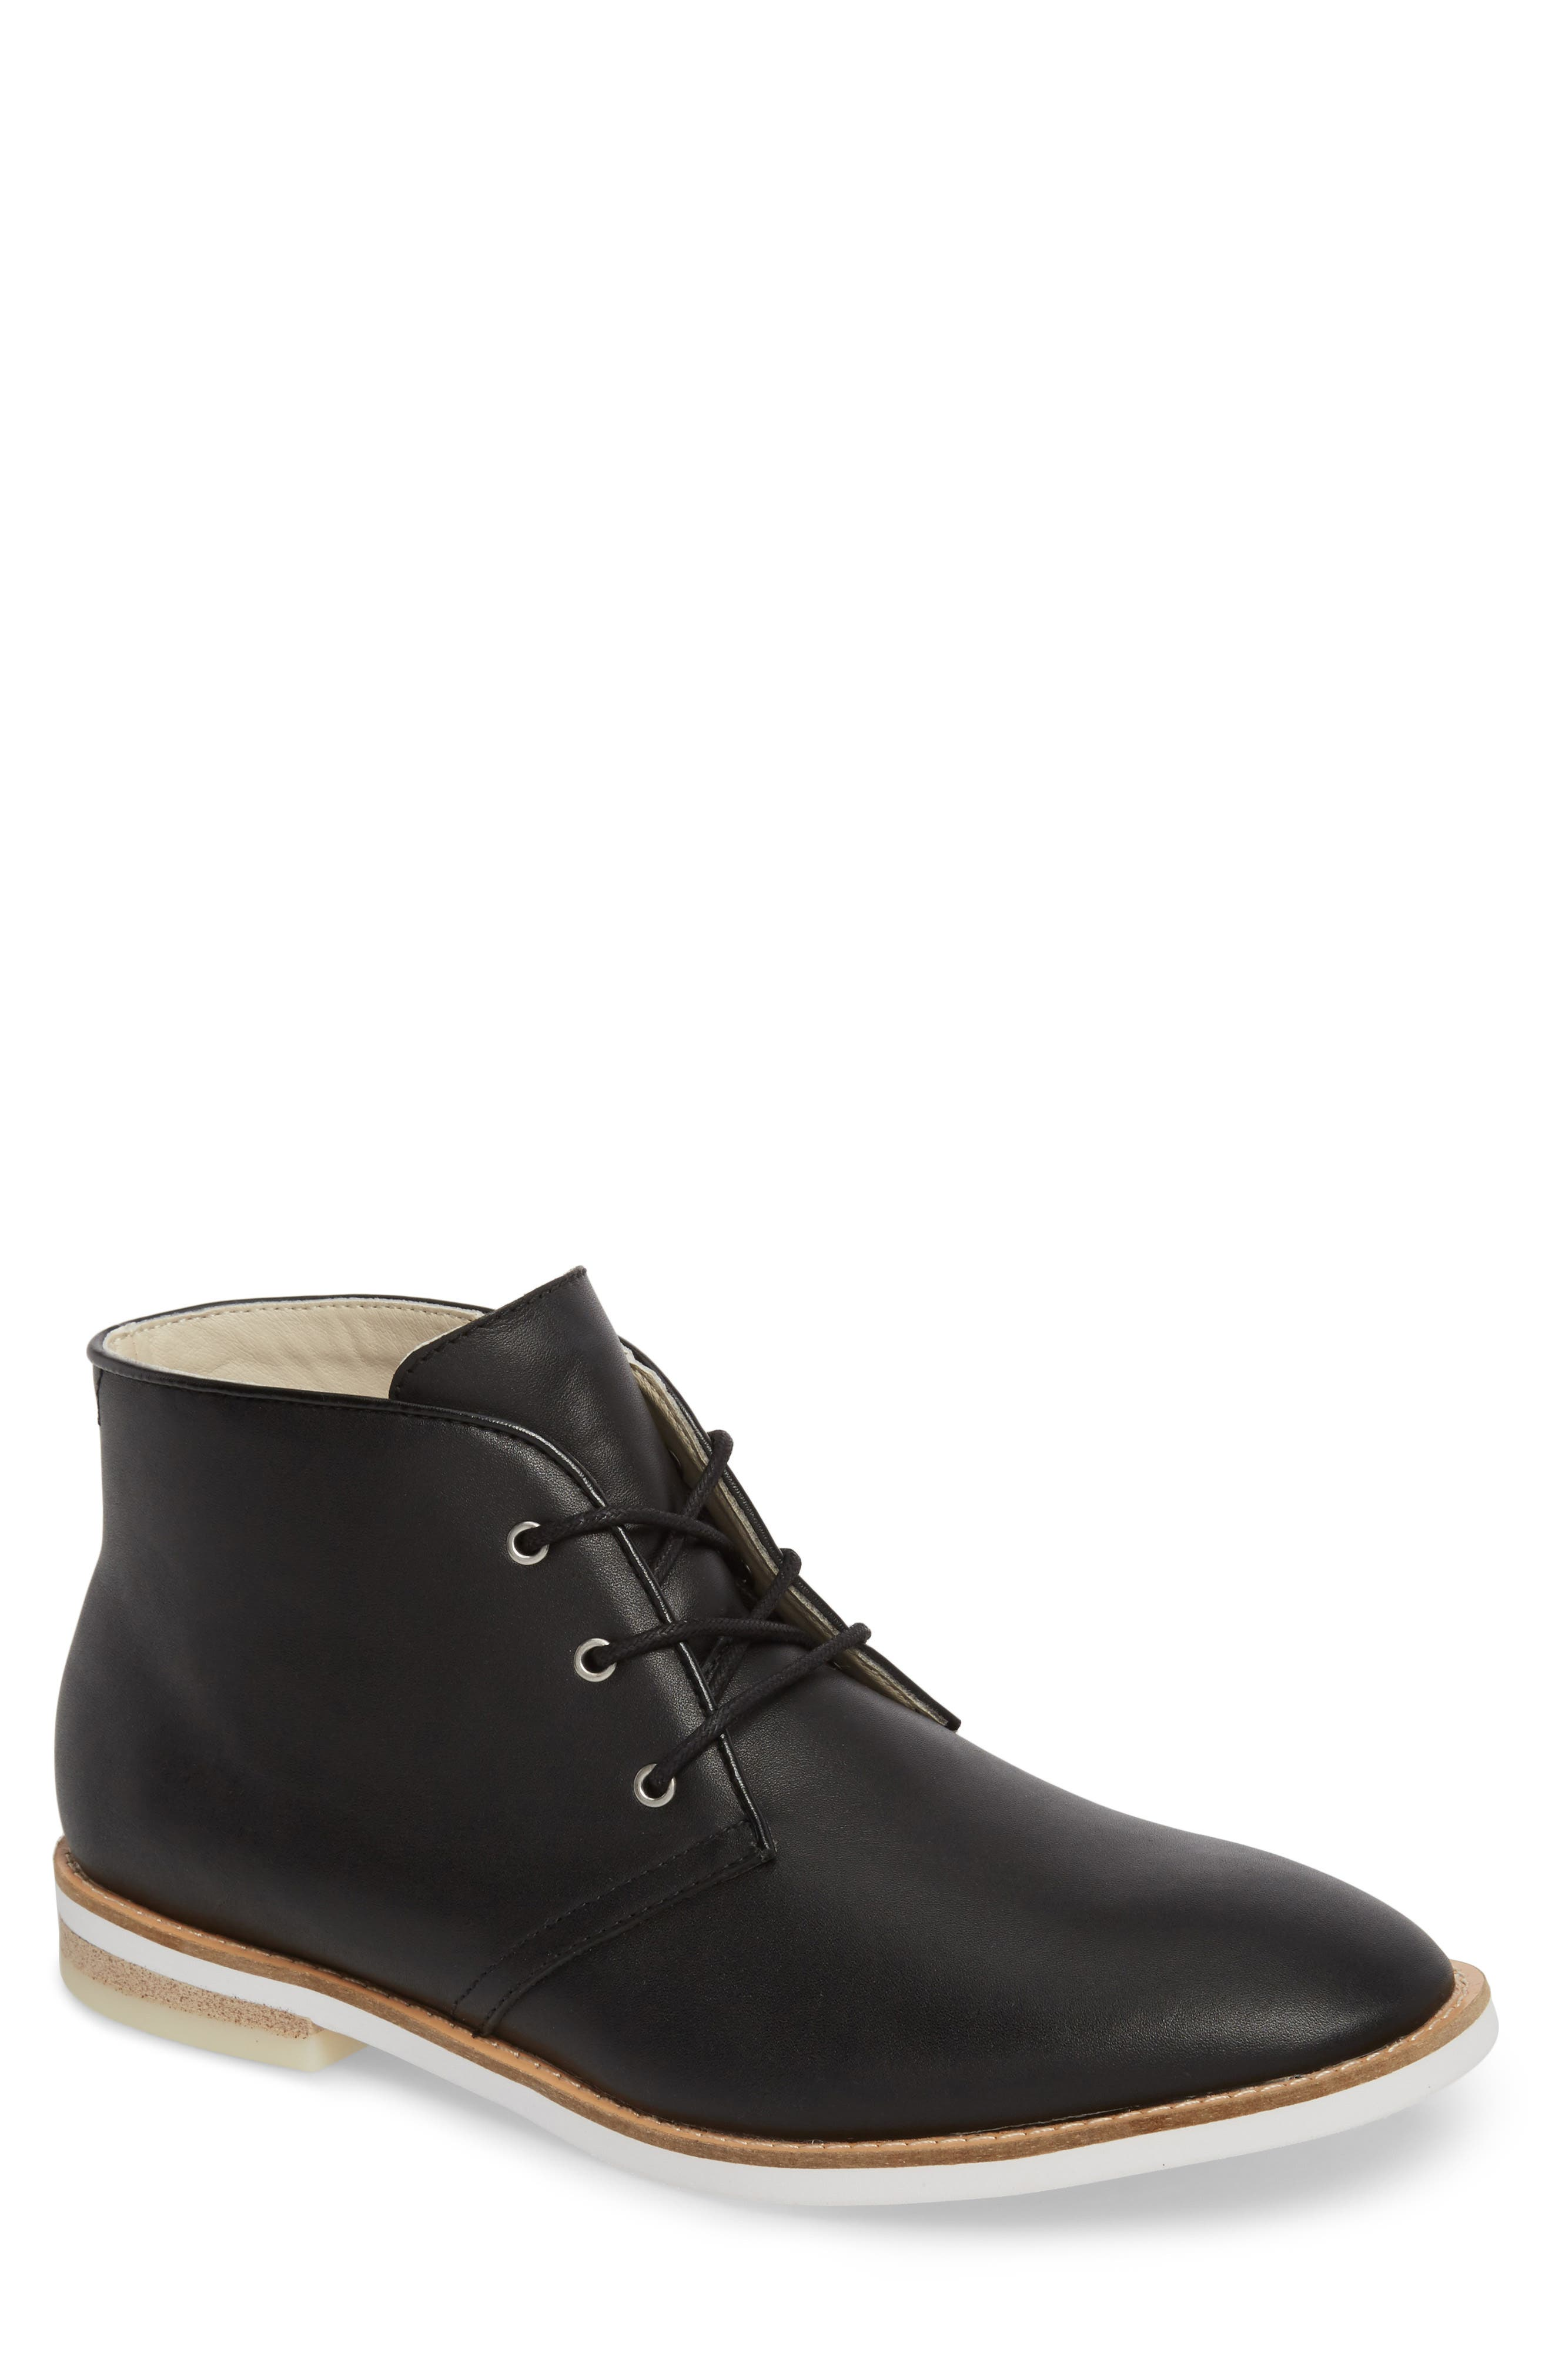 Albe Chukka Boot,                         Main,                         color, Black Leather